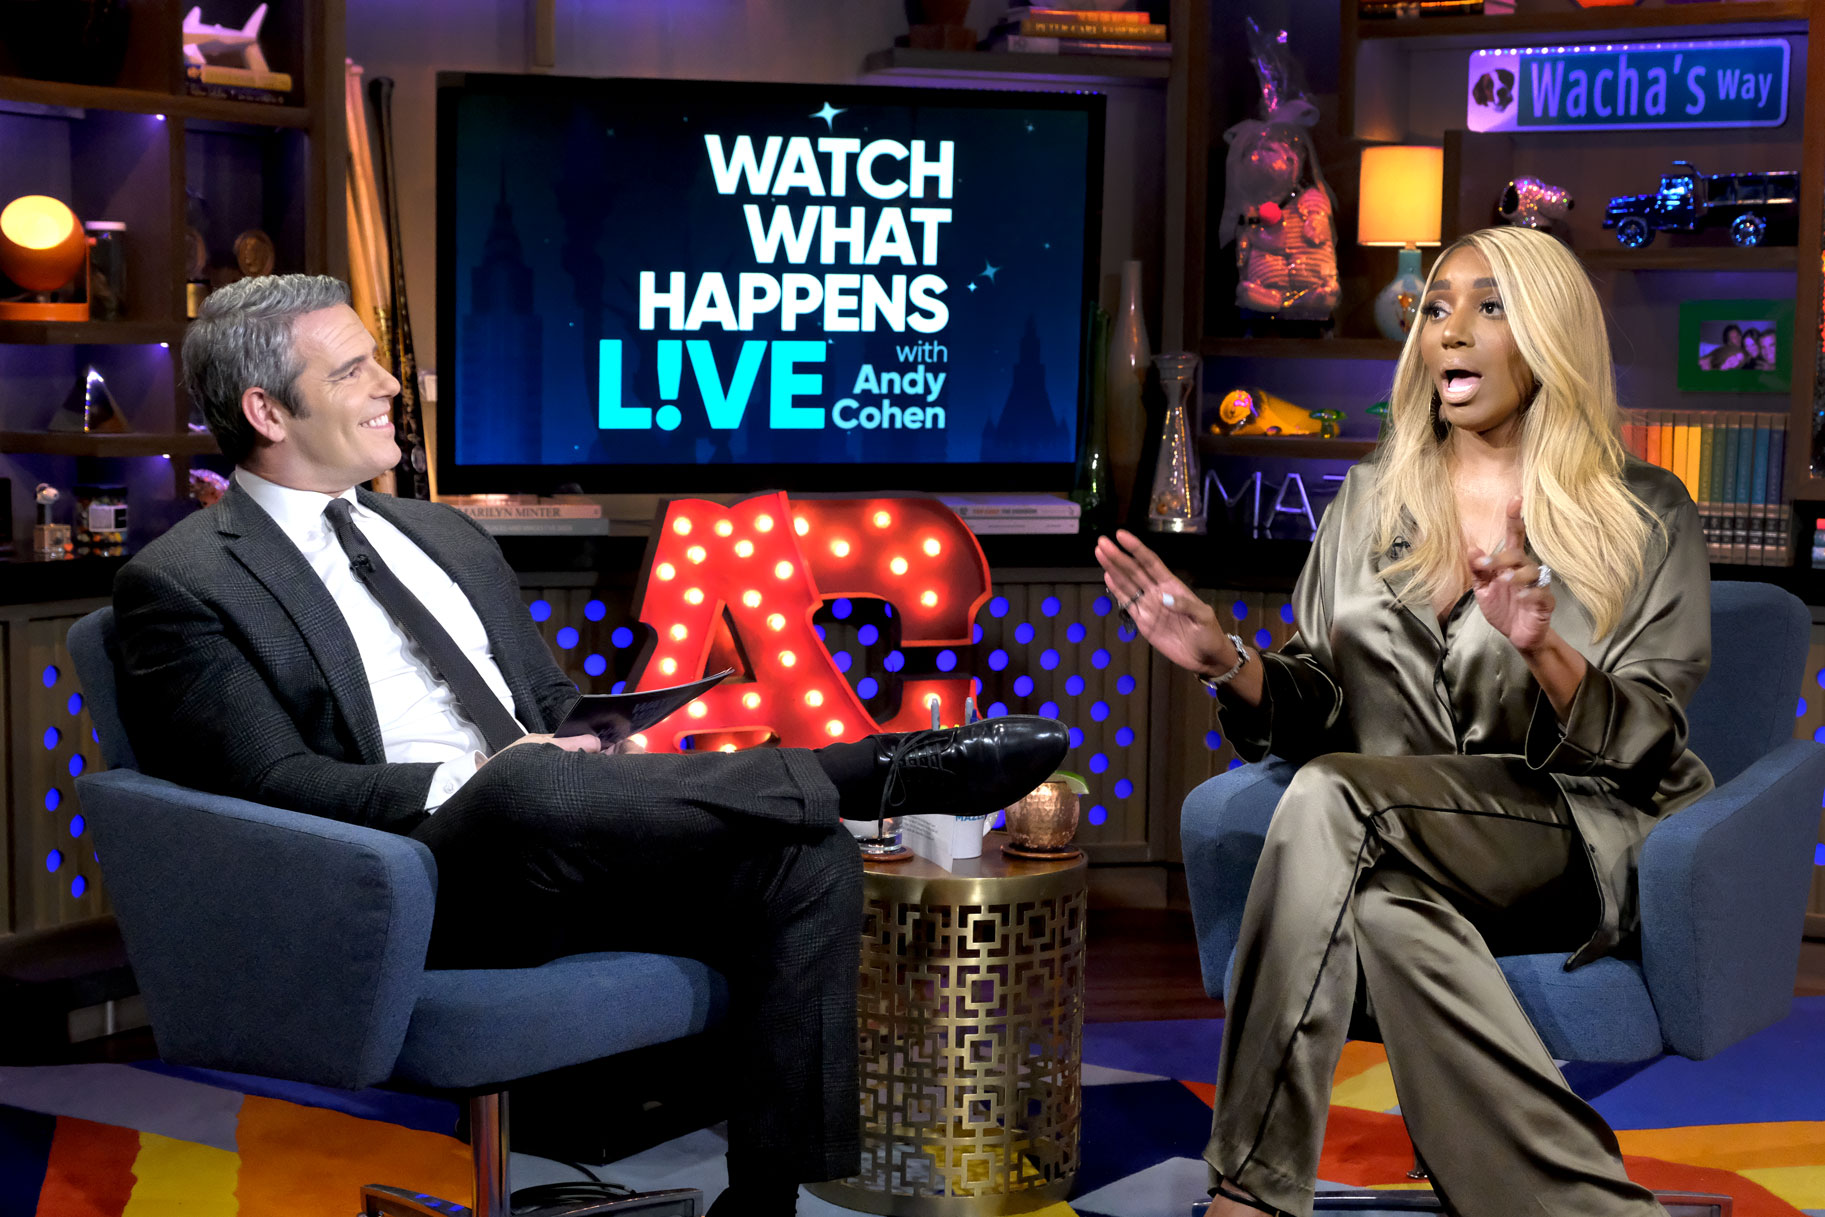 NeNe Leakes Has A Lot Of Fun On 'Watch What Happens Live' With Andy Cohen - See Her Pics